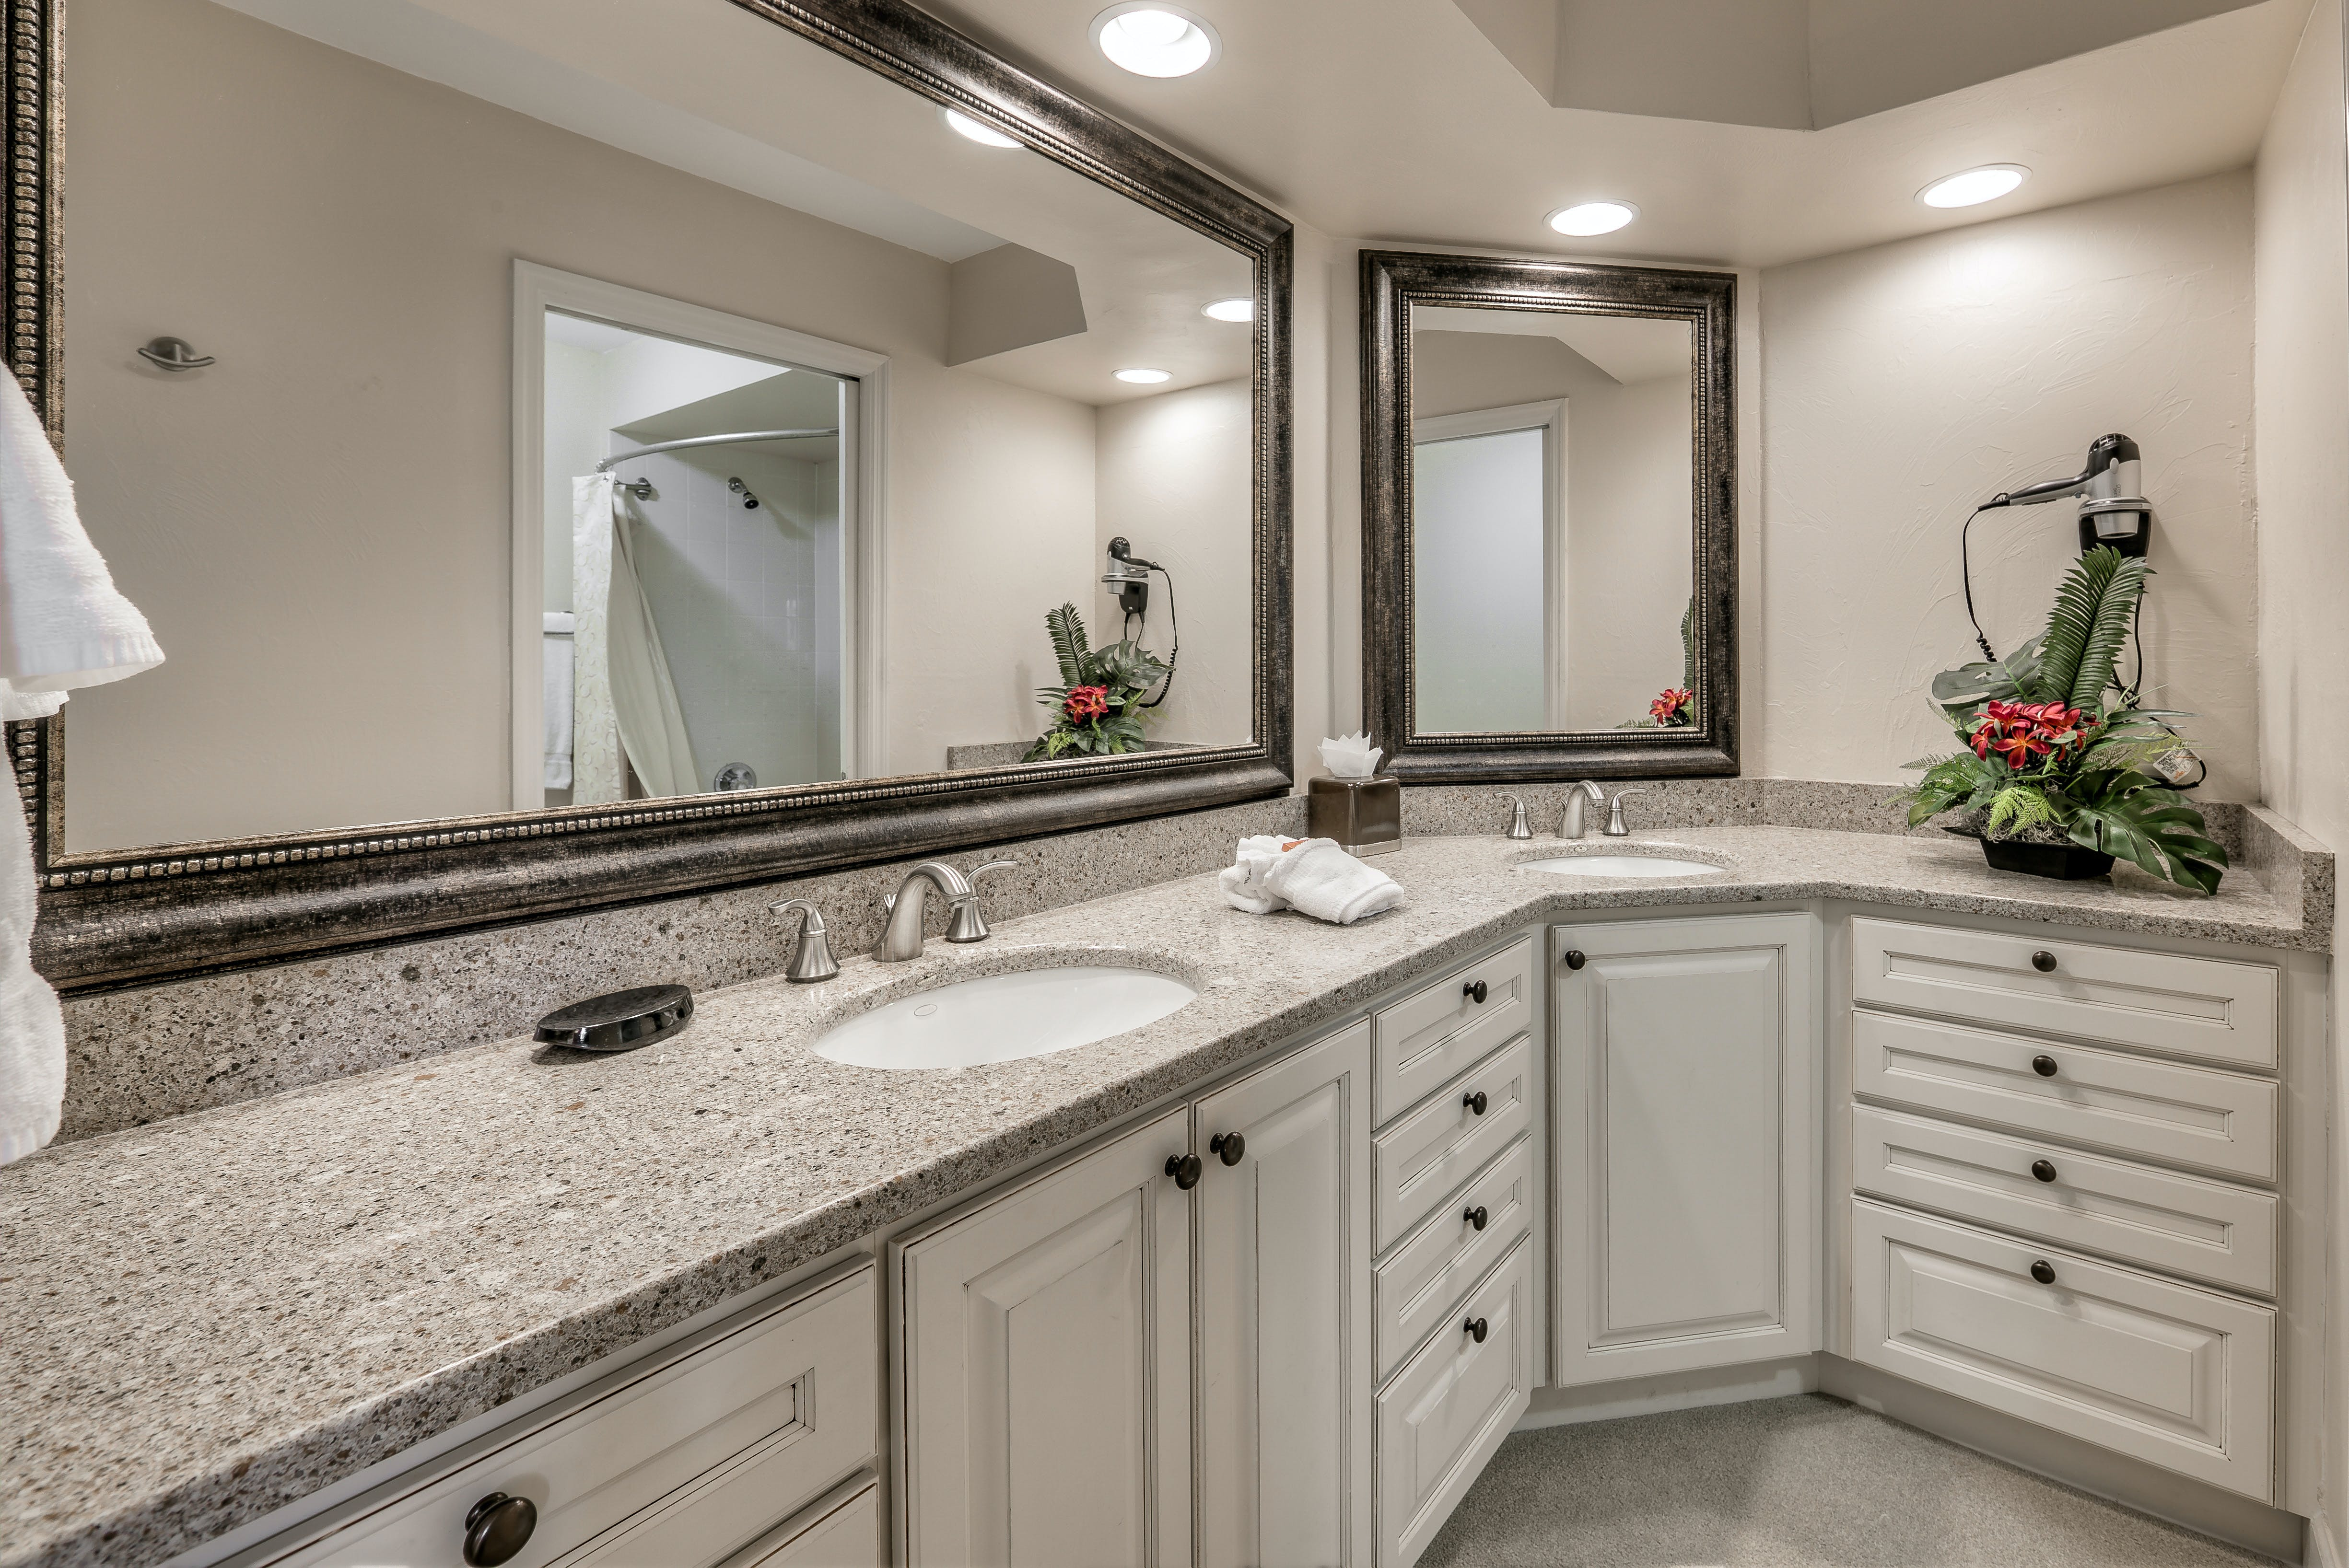 Two Bedroom Suite master bathroom with extended vanity